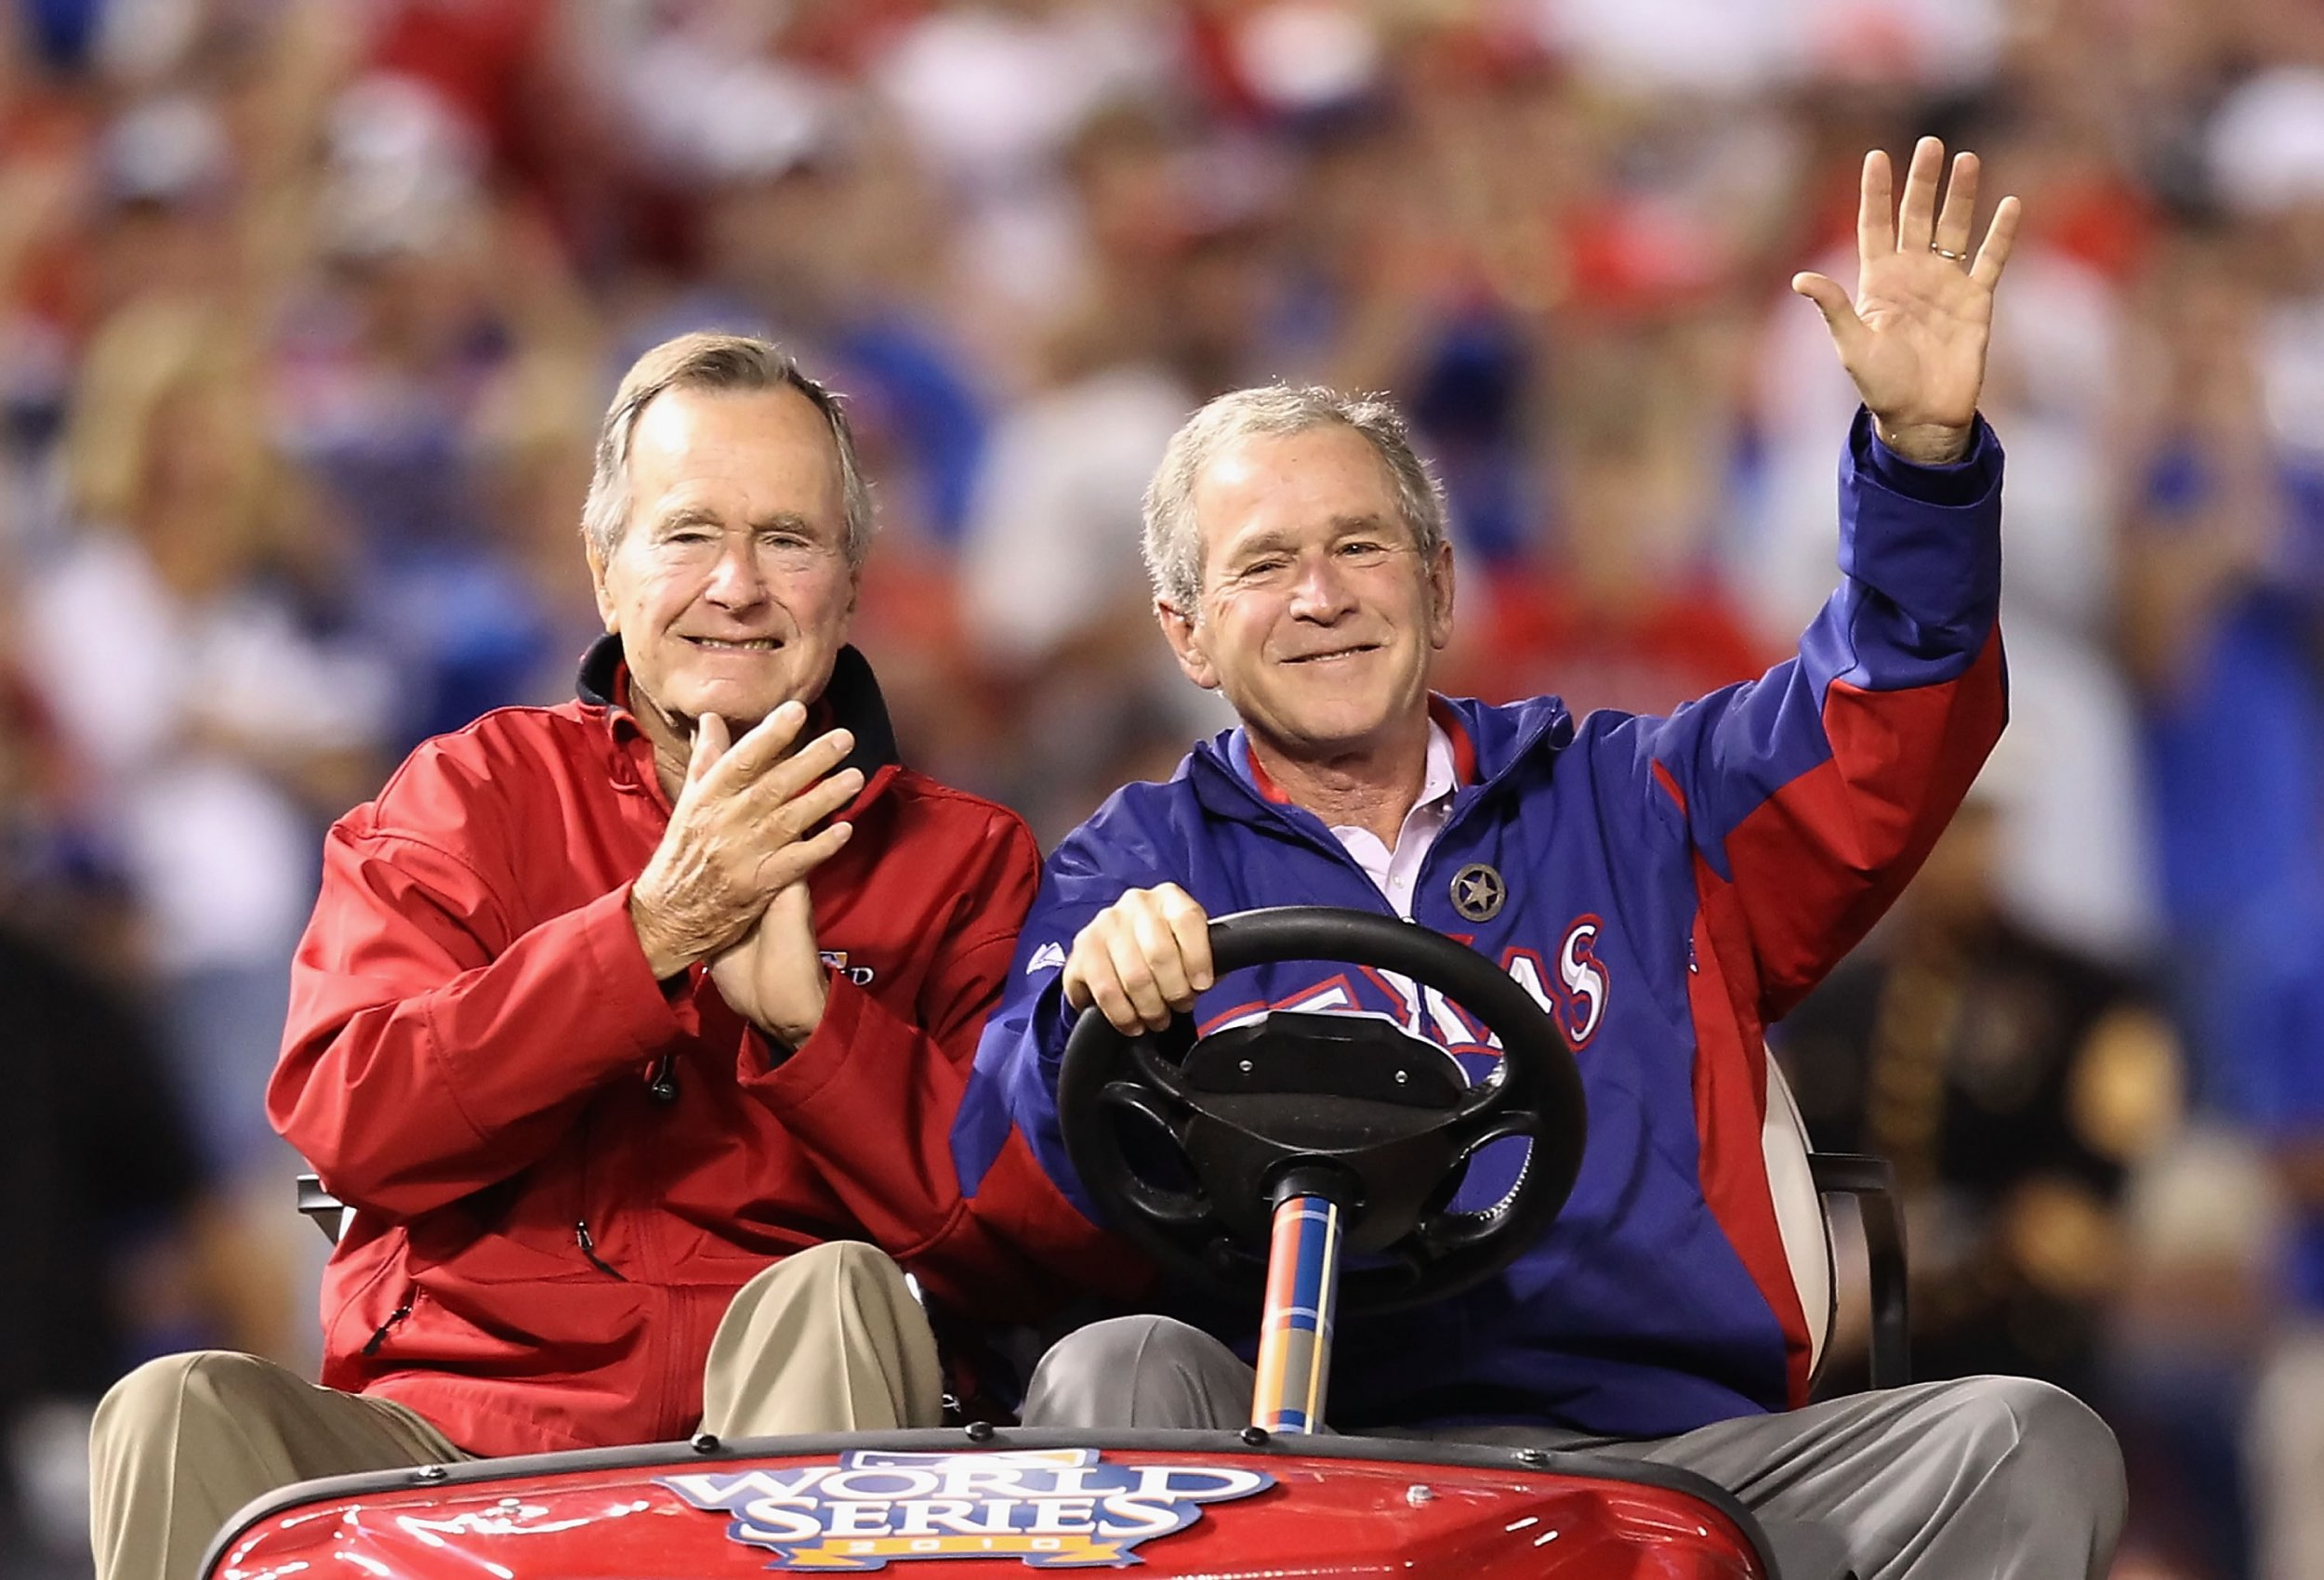 Bush presidents 41 and 43